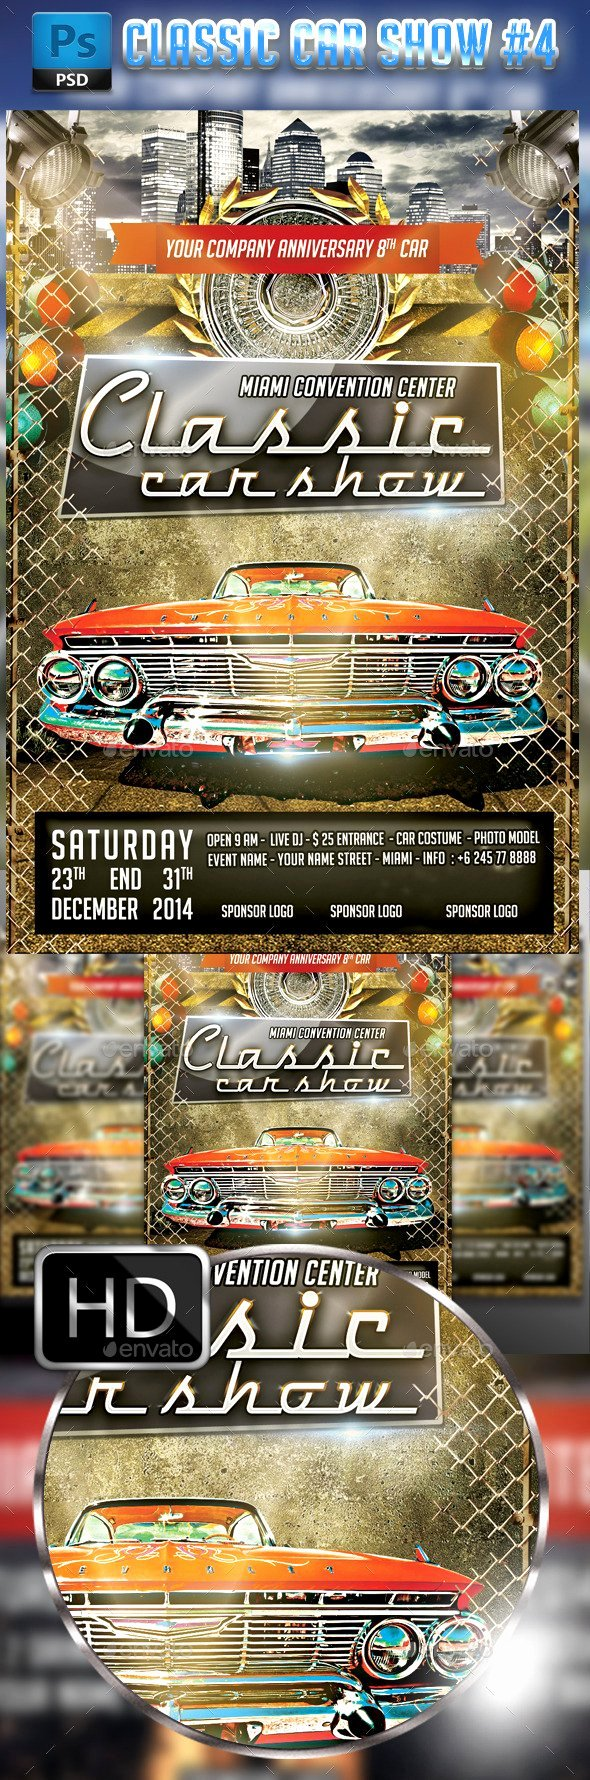 Car Show Flyer Template Luxury Newest S Car Show Poster Template Twilightblog